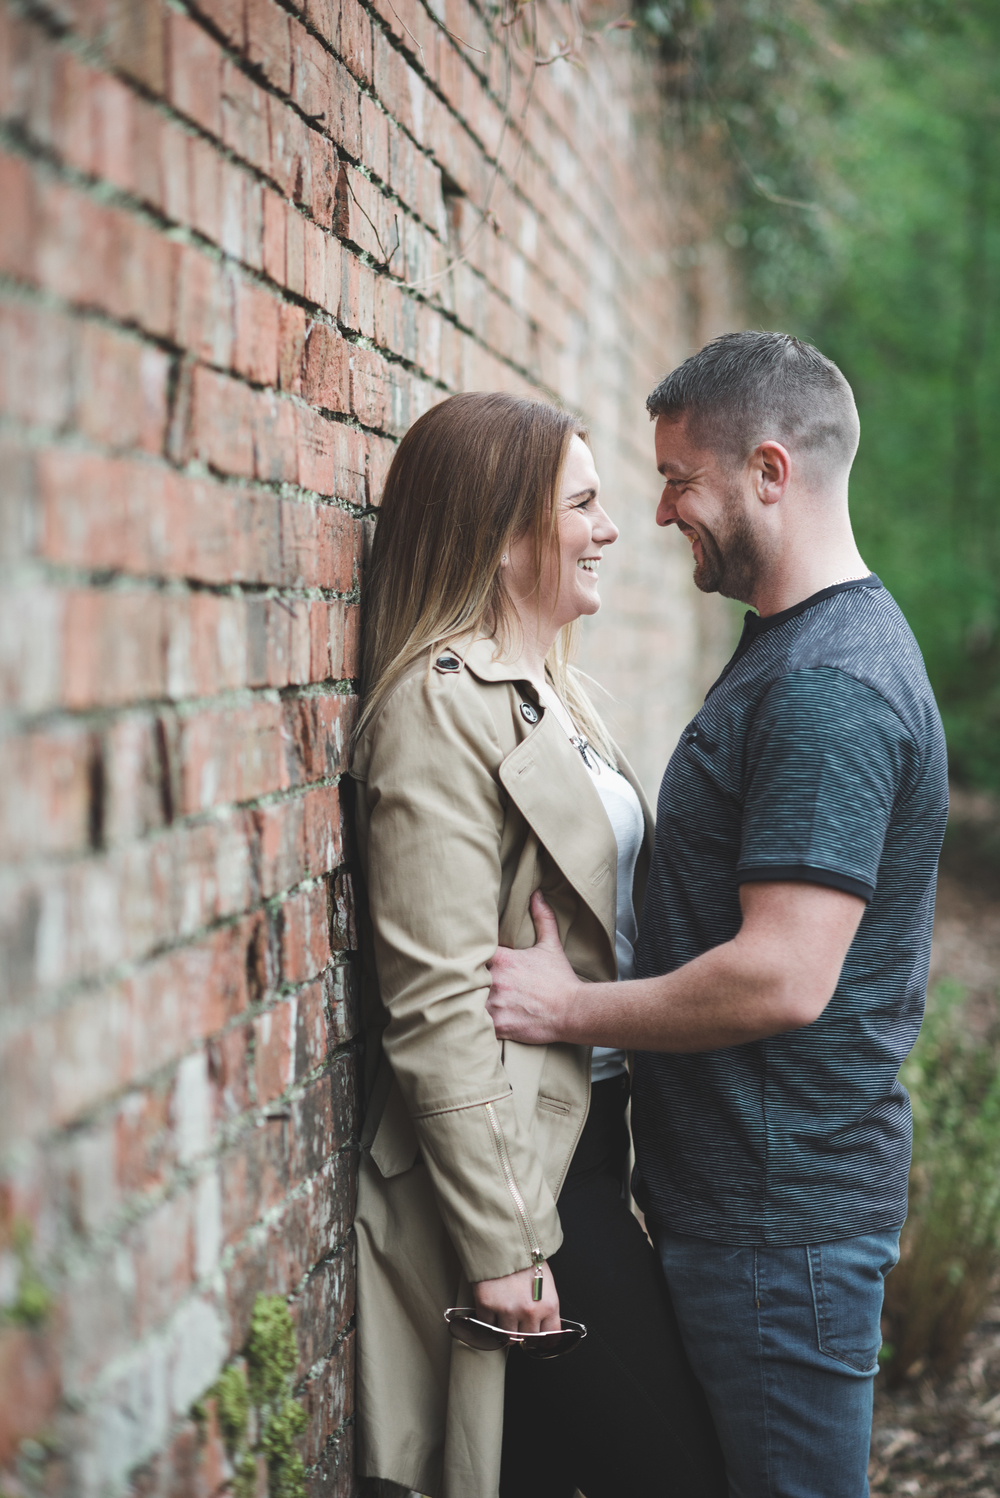 Nikki_Chris_engagement_session_belfast_purephotoni_sir_thomas_and_lady_dixons_park_brick_wall